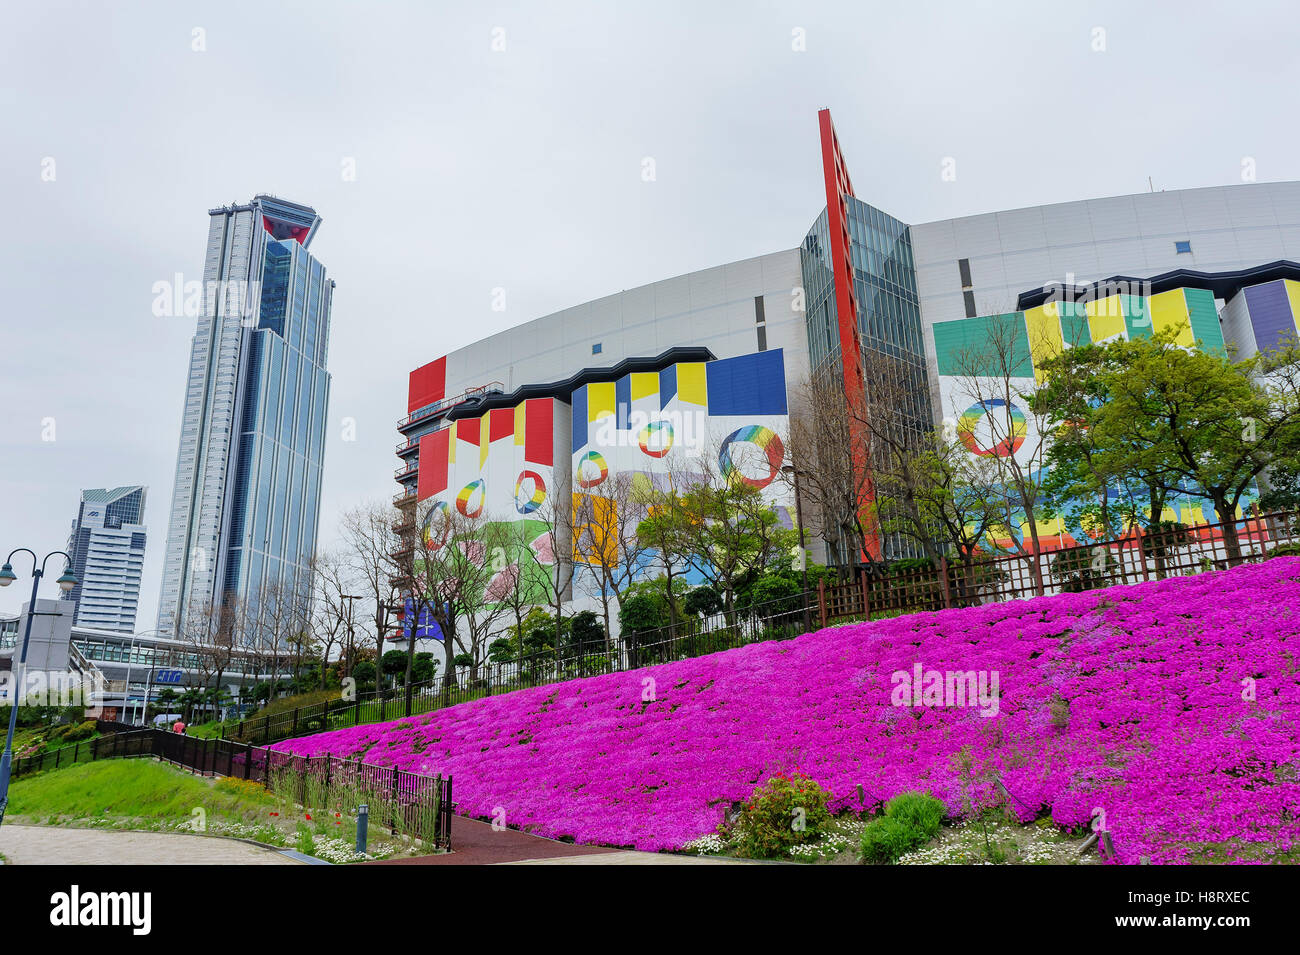 Osaka, APR 29: Cosmo Tower and ATC Shopping Mall with purple flowers blossom on APR 29, 2011 at Osaka, Japan - Stock Image